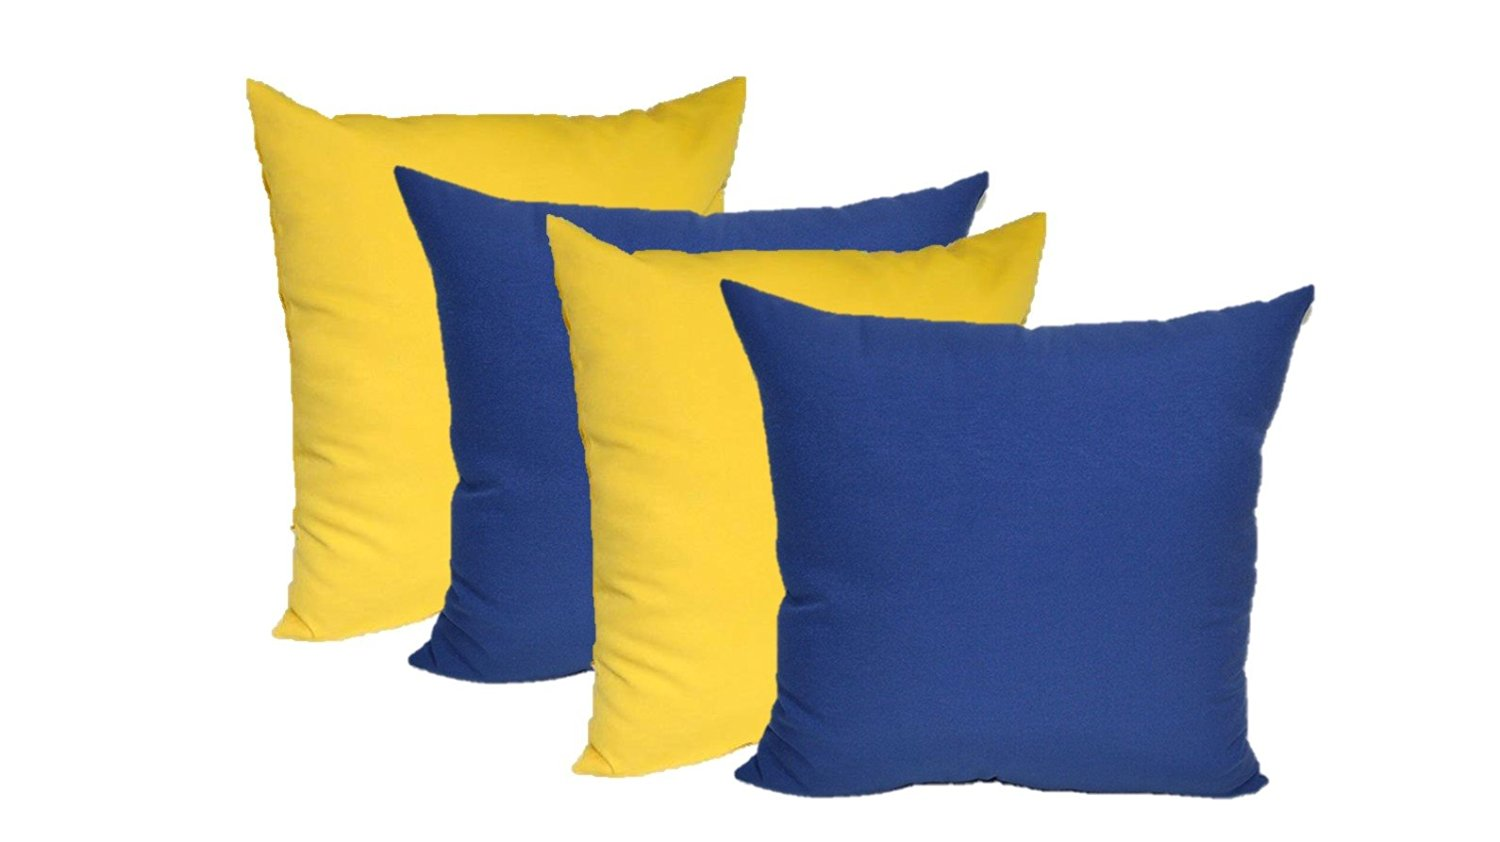 Cheap Blue And Yellow Throw Pillows Find Blue And Yellow Throw Pillows Deals On Line At Alibaba Com